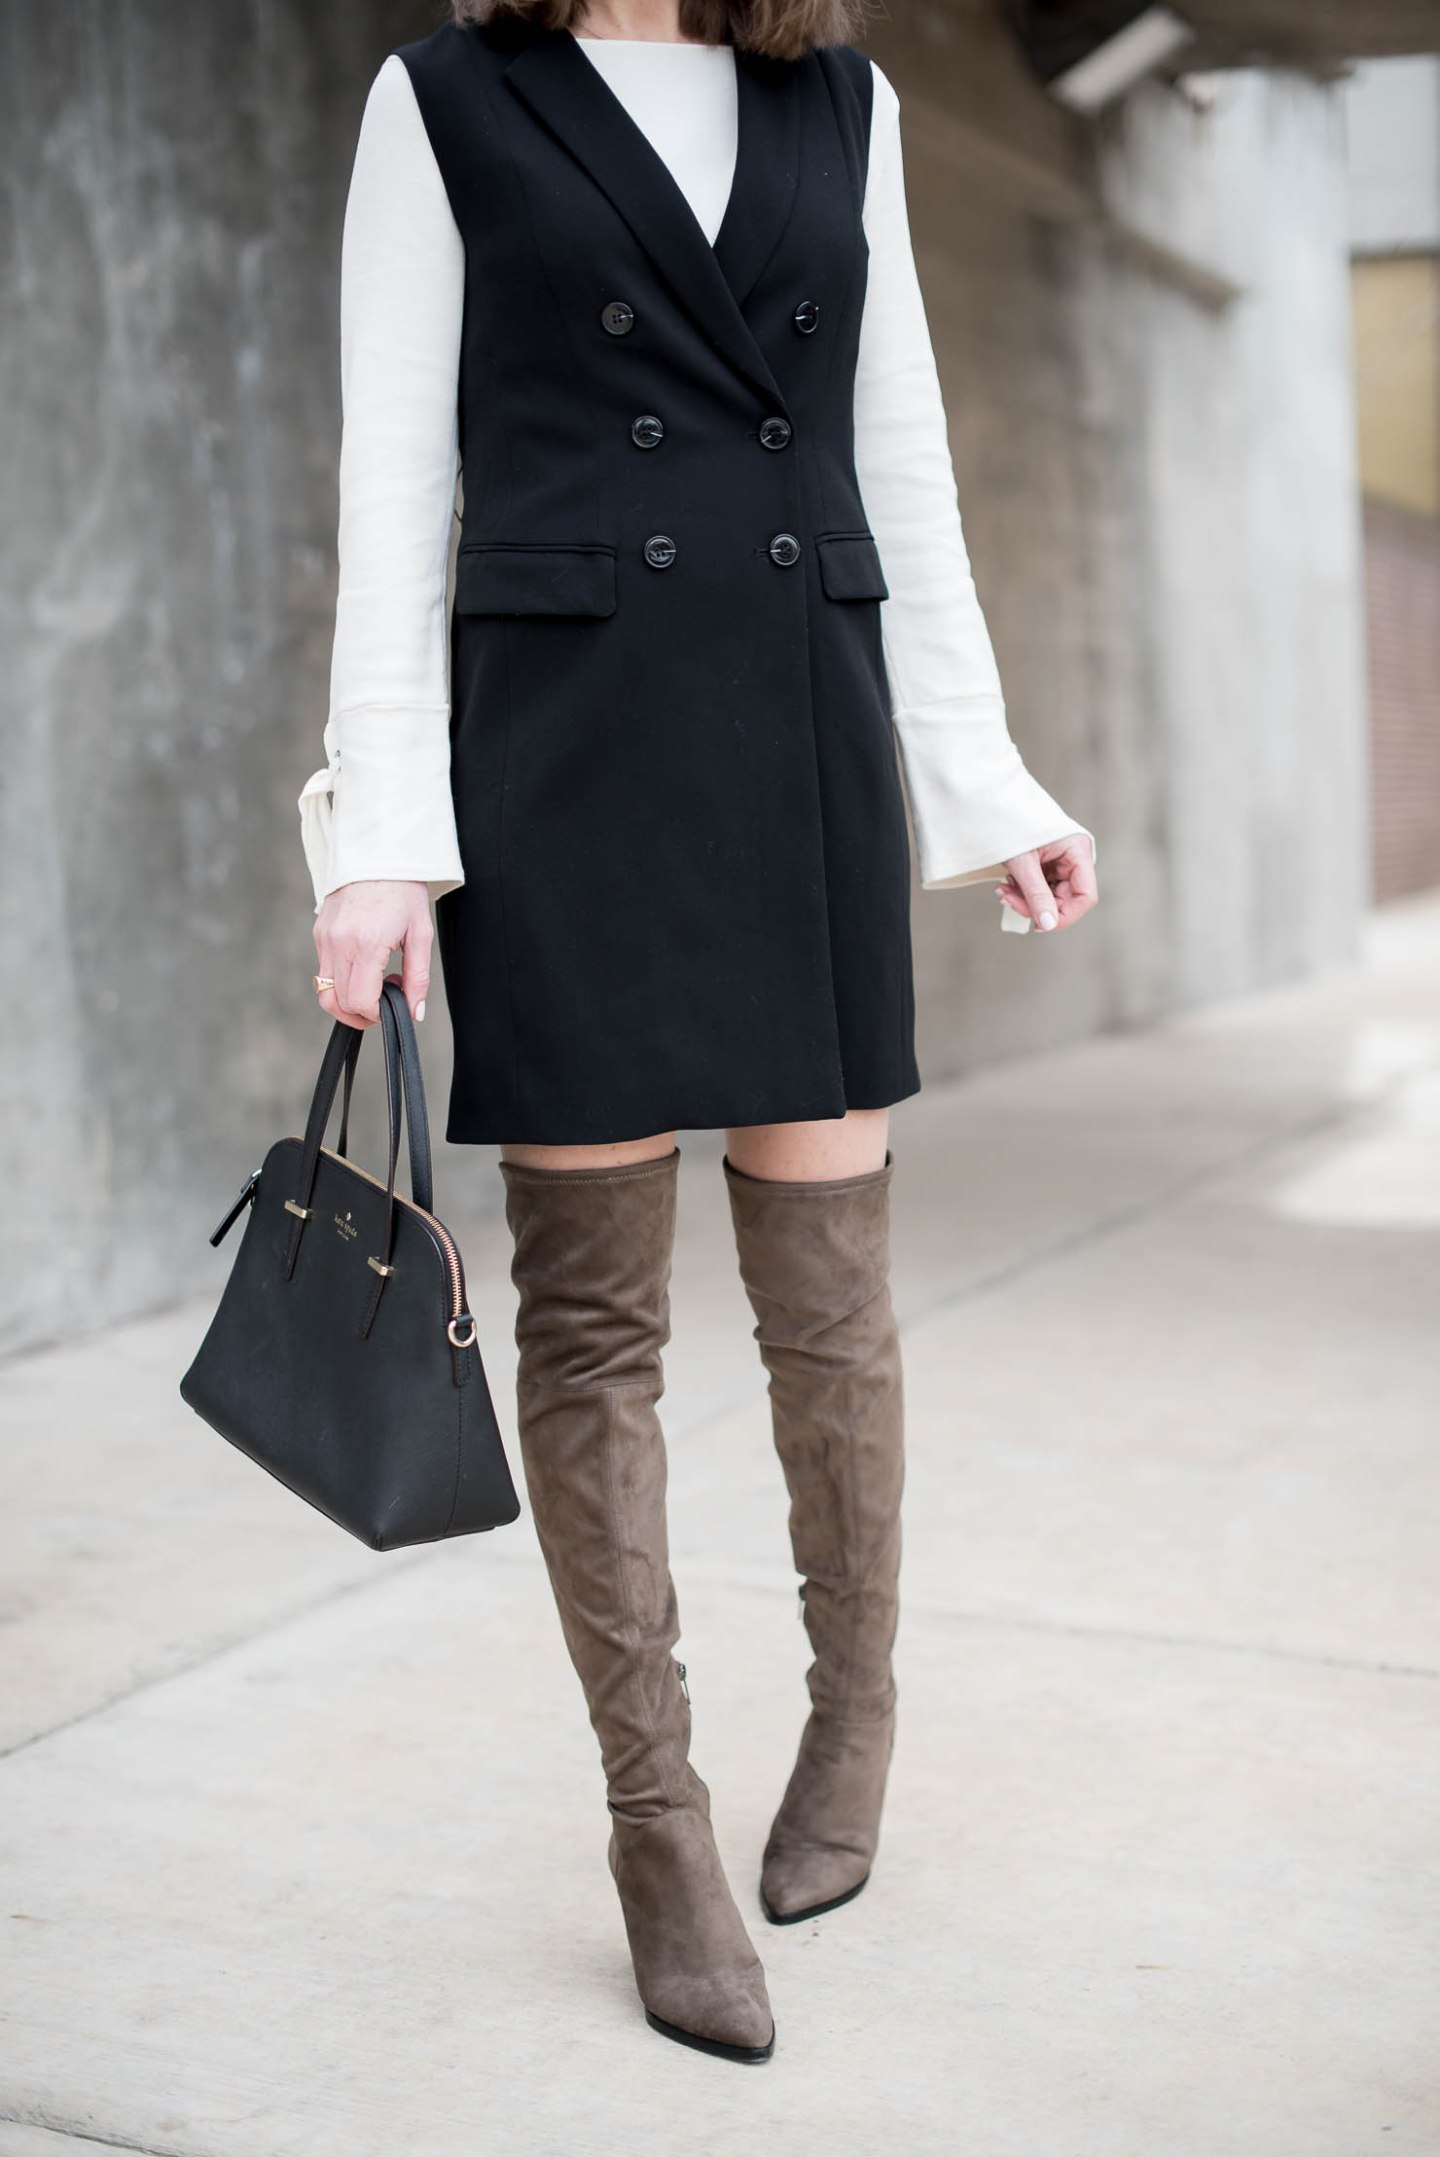 h&m-double-breasted-sleeveless-trench-vest-bell-sleeves-tie-cuffs-marc-fisher-alinda-boots-best-over-the-knee-boots